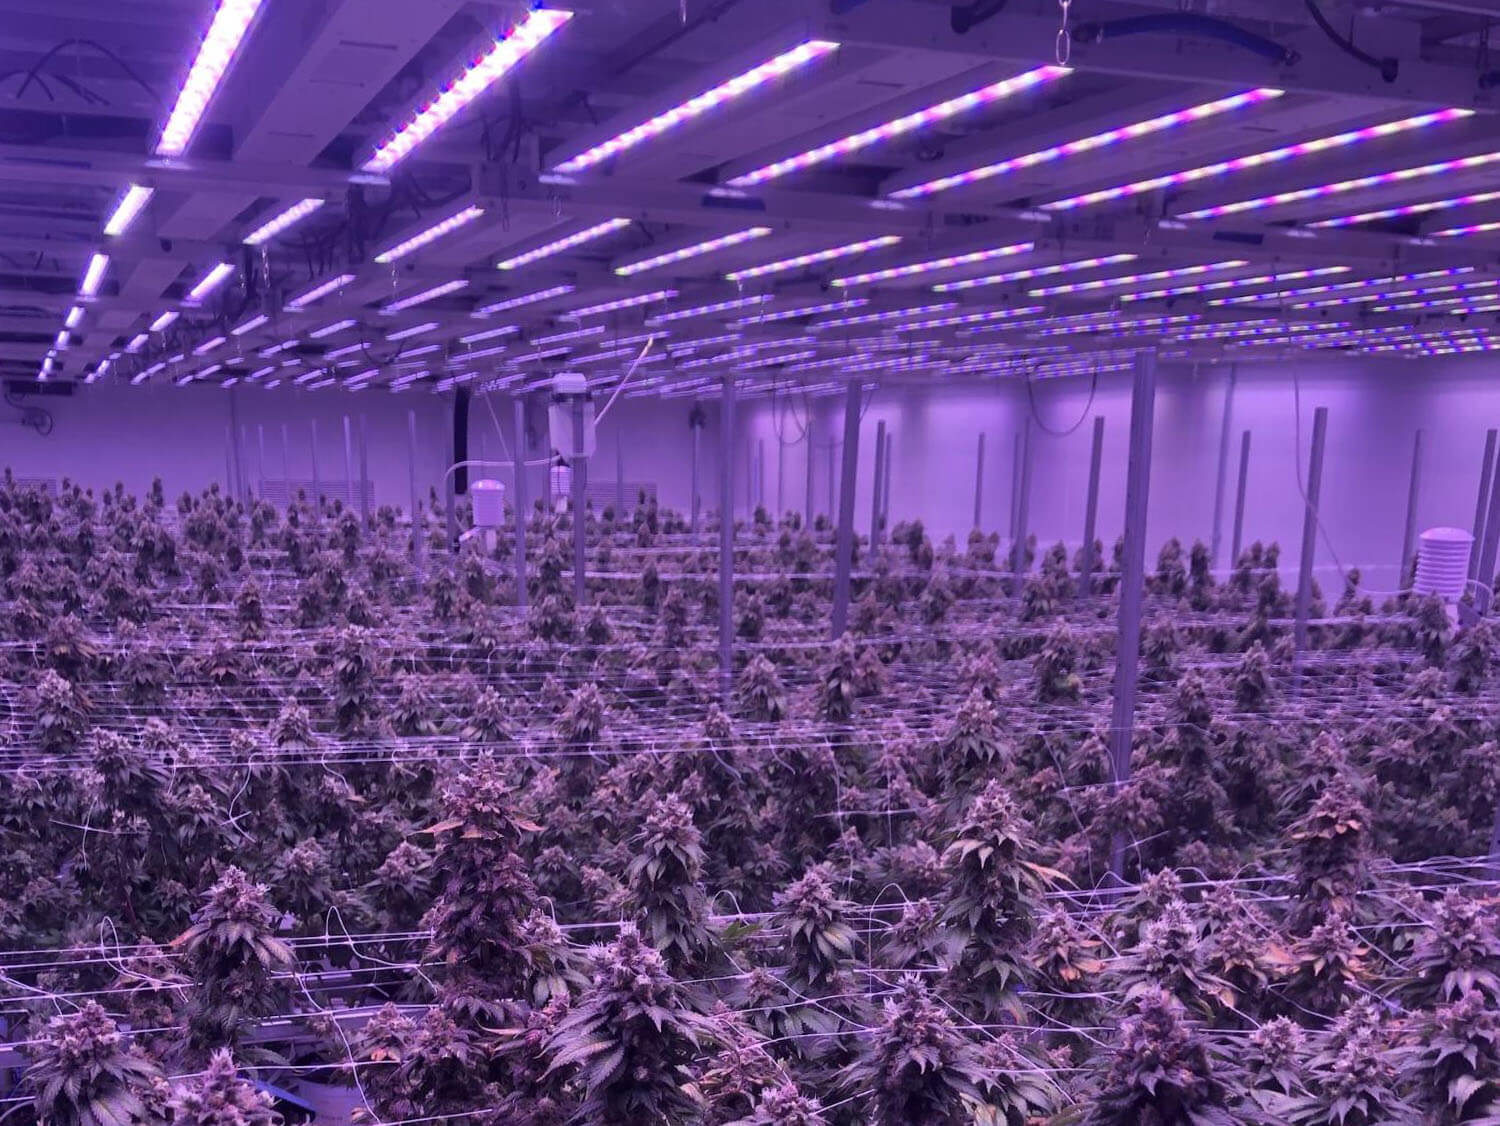 Study of Cannabis Energy Use Shows Indoor Cultivation Operations Using LED Lighting Demonstrate Better Efficiency